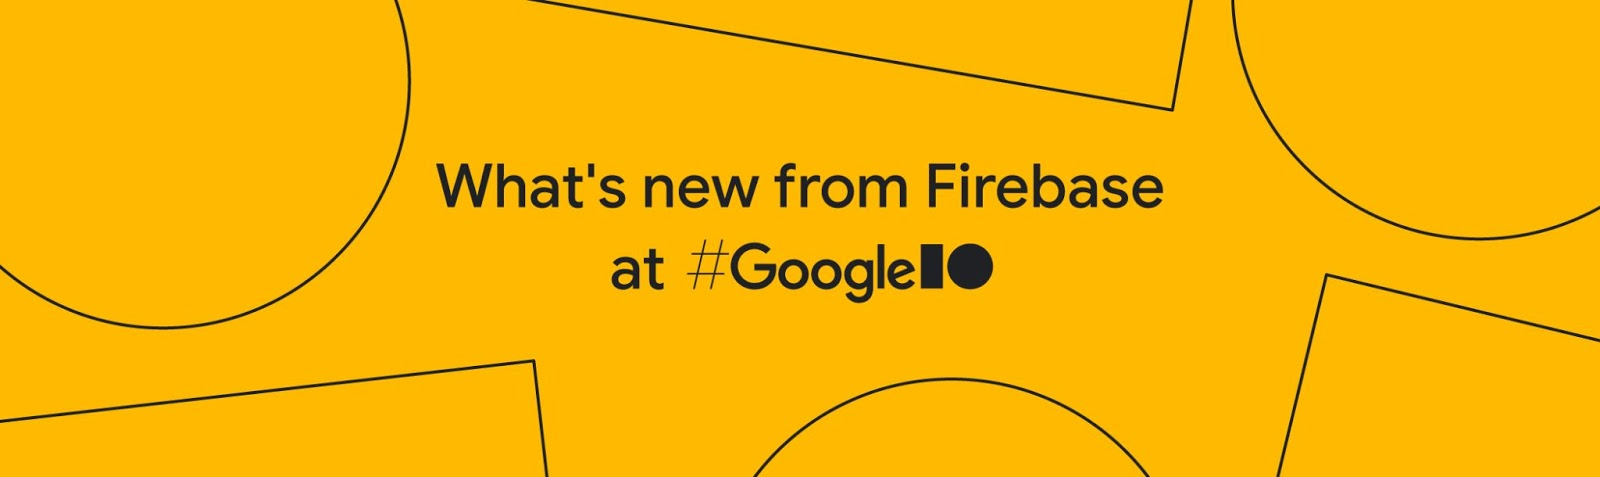 What's new from Firebase graphic